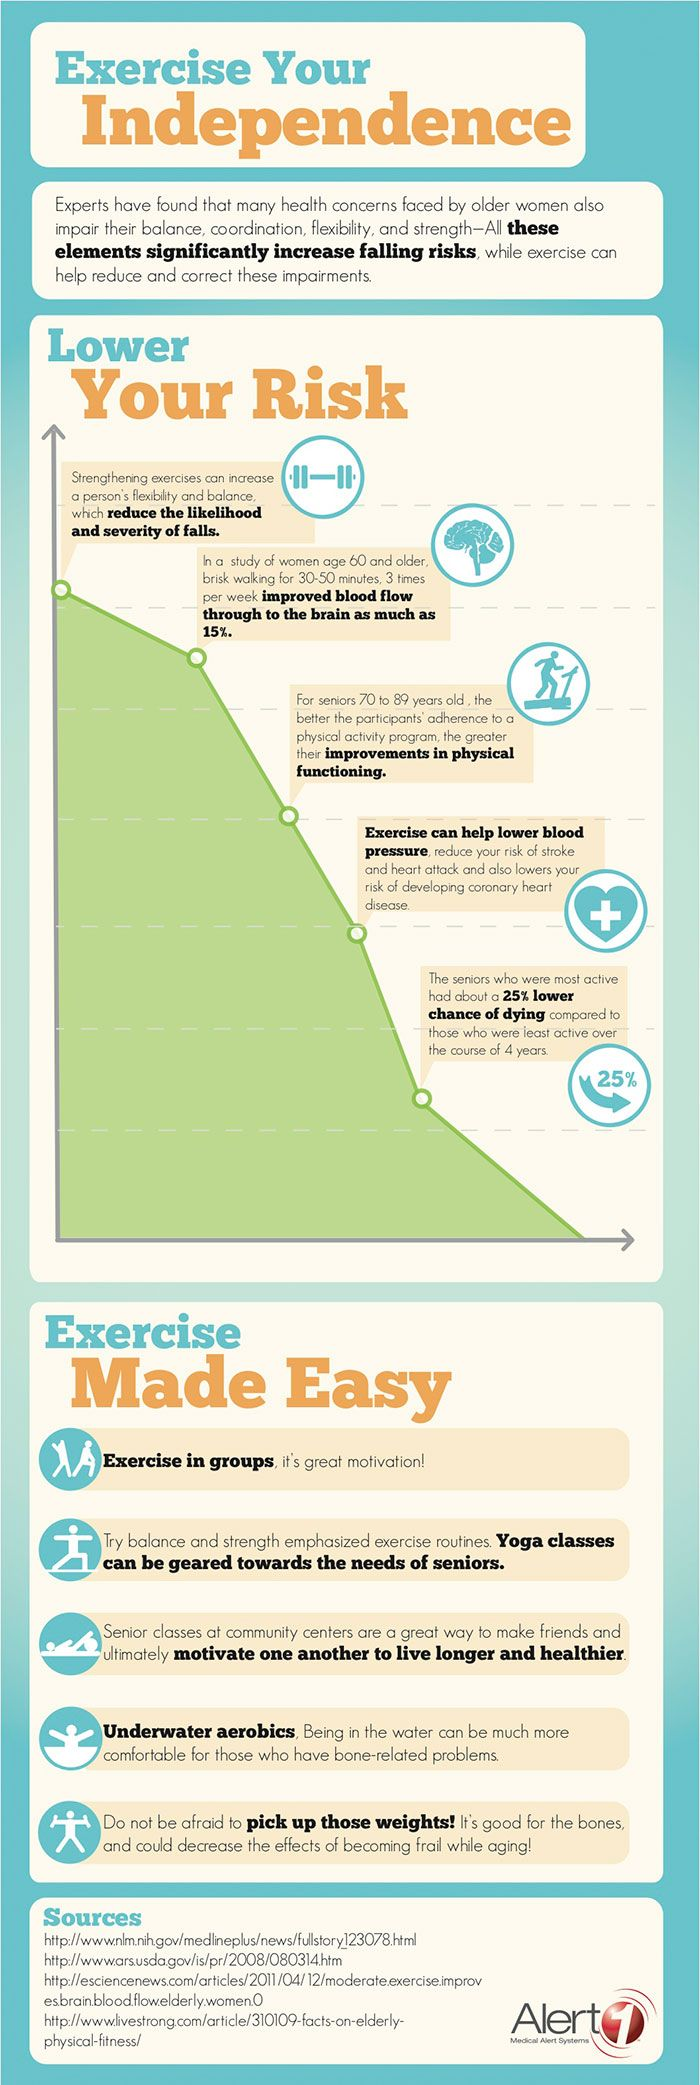 25 Best Sport And Recreation Infographics Images On